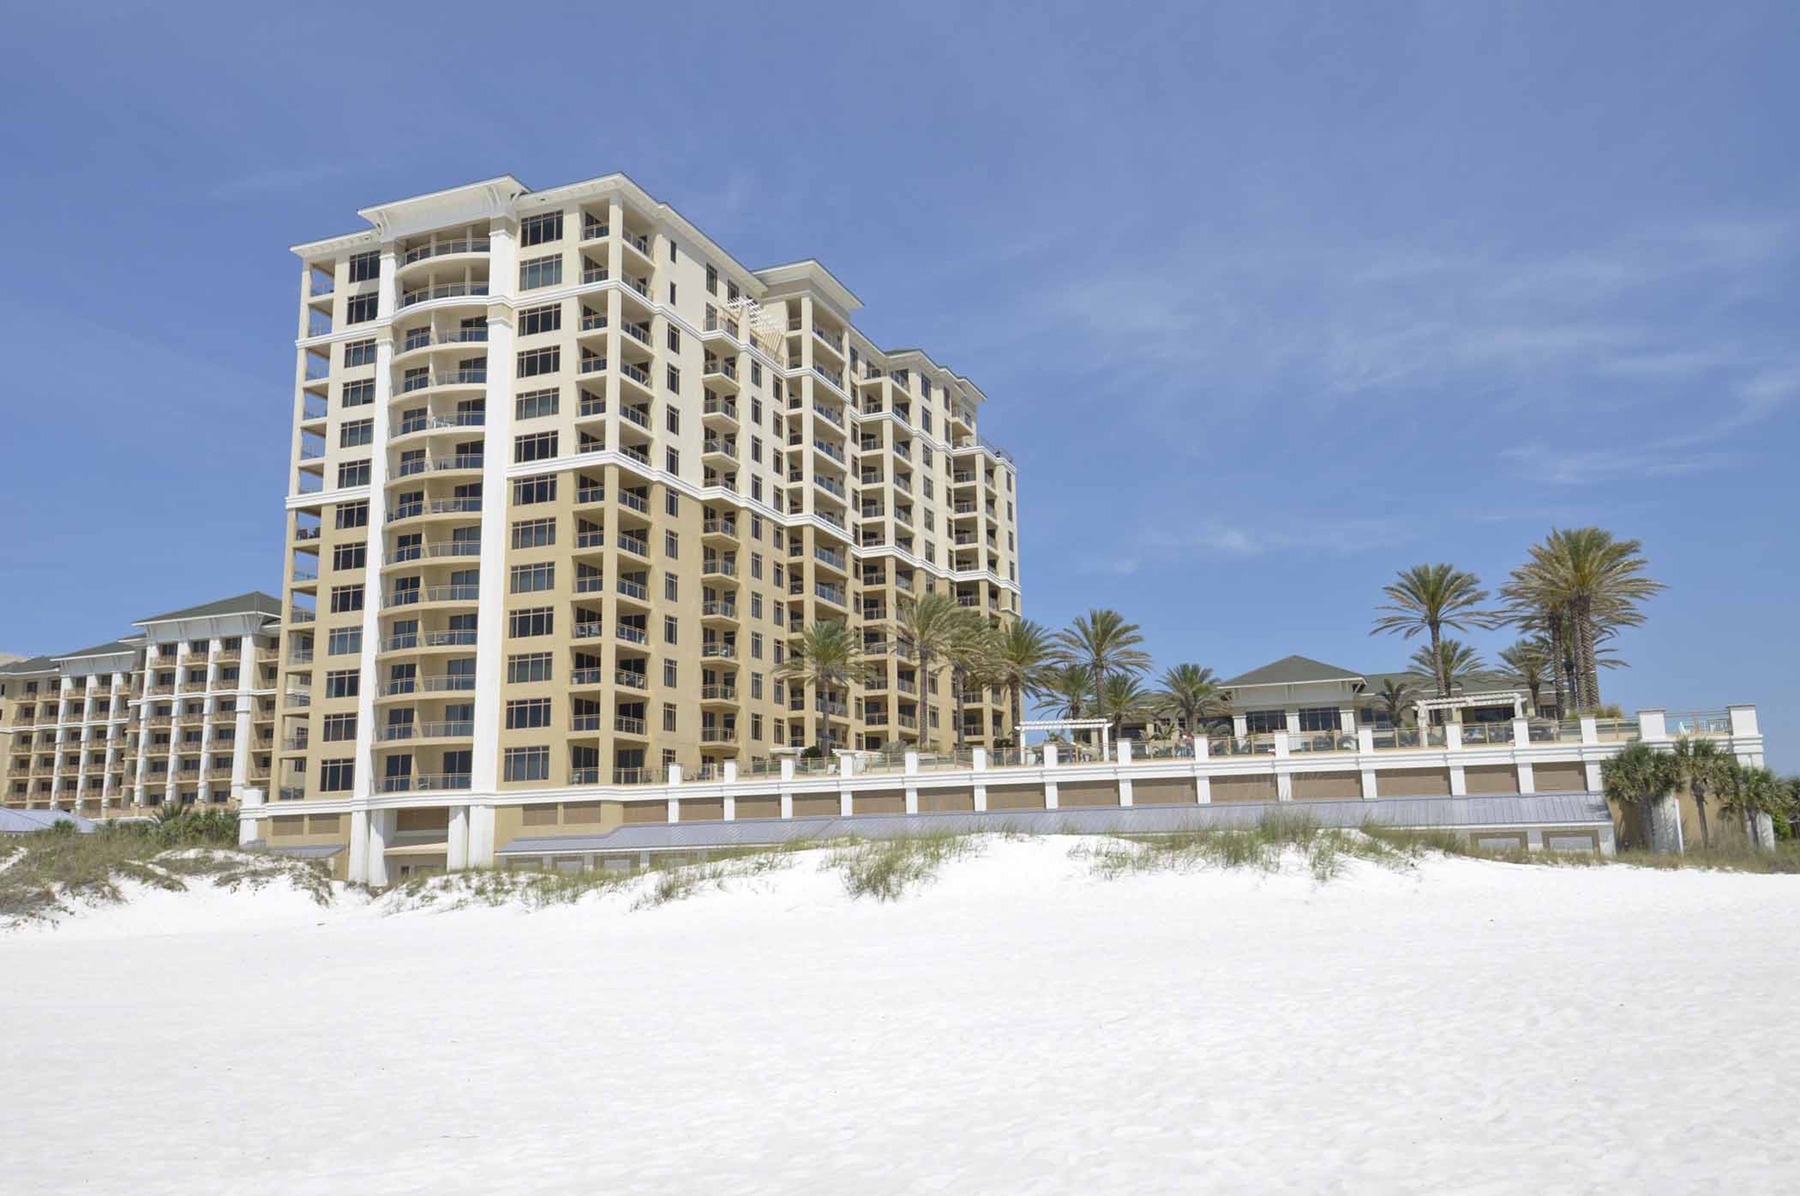 Condominium for Sale at CLEARWATER BEACH 11 Baymont St 1406 Clearwater Beach, Florida 33767 United States